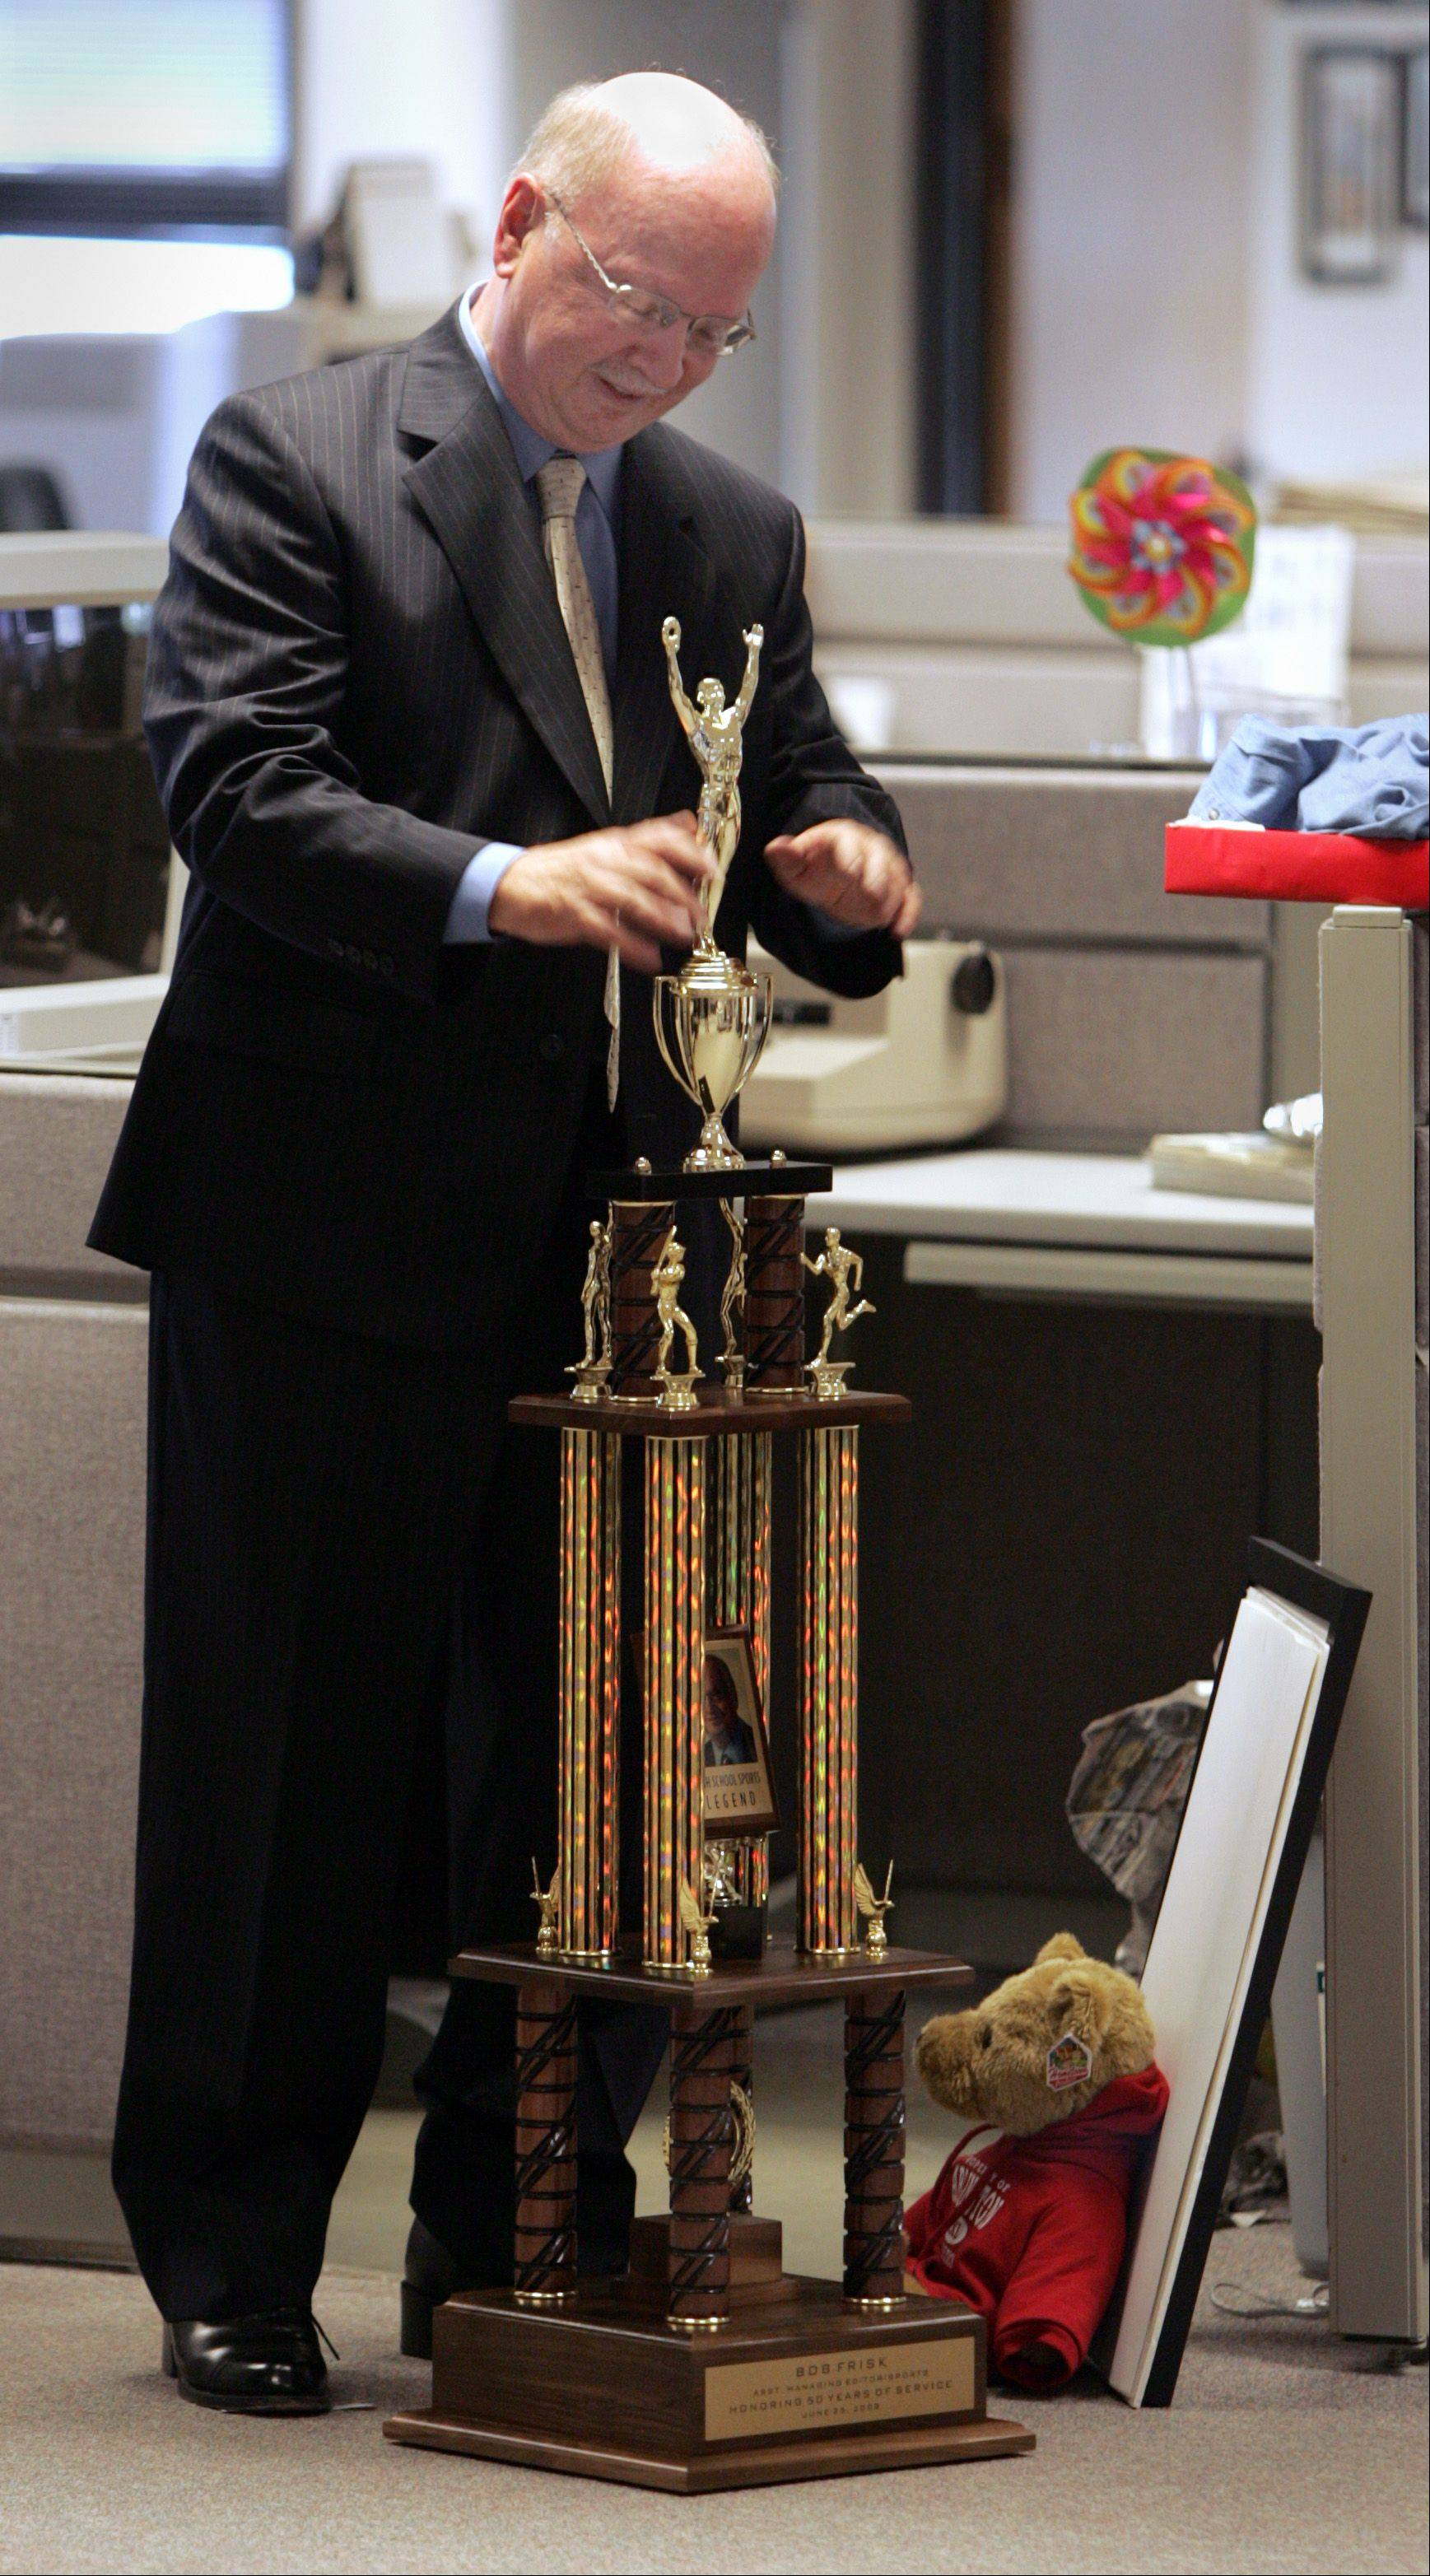 Bob Frisk, here accepting his very own Paddock Cup trophy during a ceremony to honor his 50th anniversary with the Daily Herald in 2008, will be honored again on Friday at Prospect. He�s been selected as as inaugural choice for the IHSA�s Distinguished Media Service award.